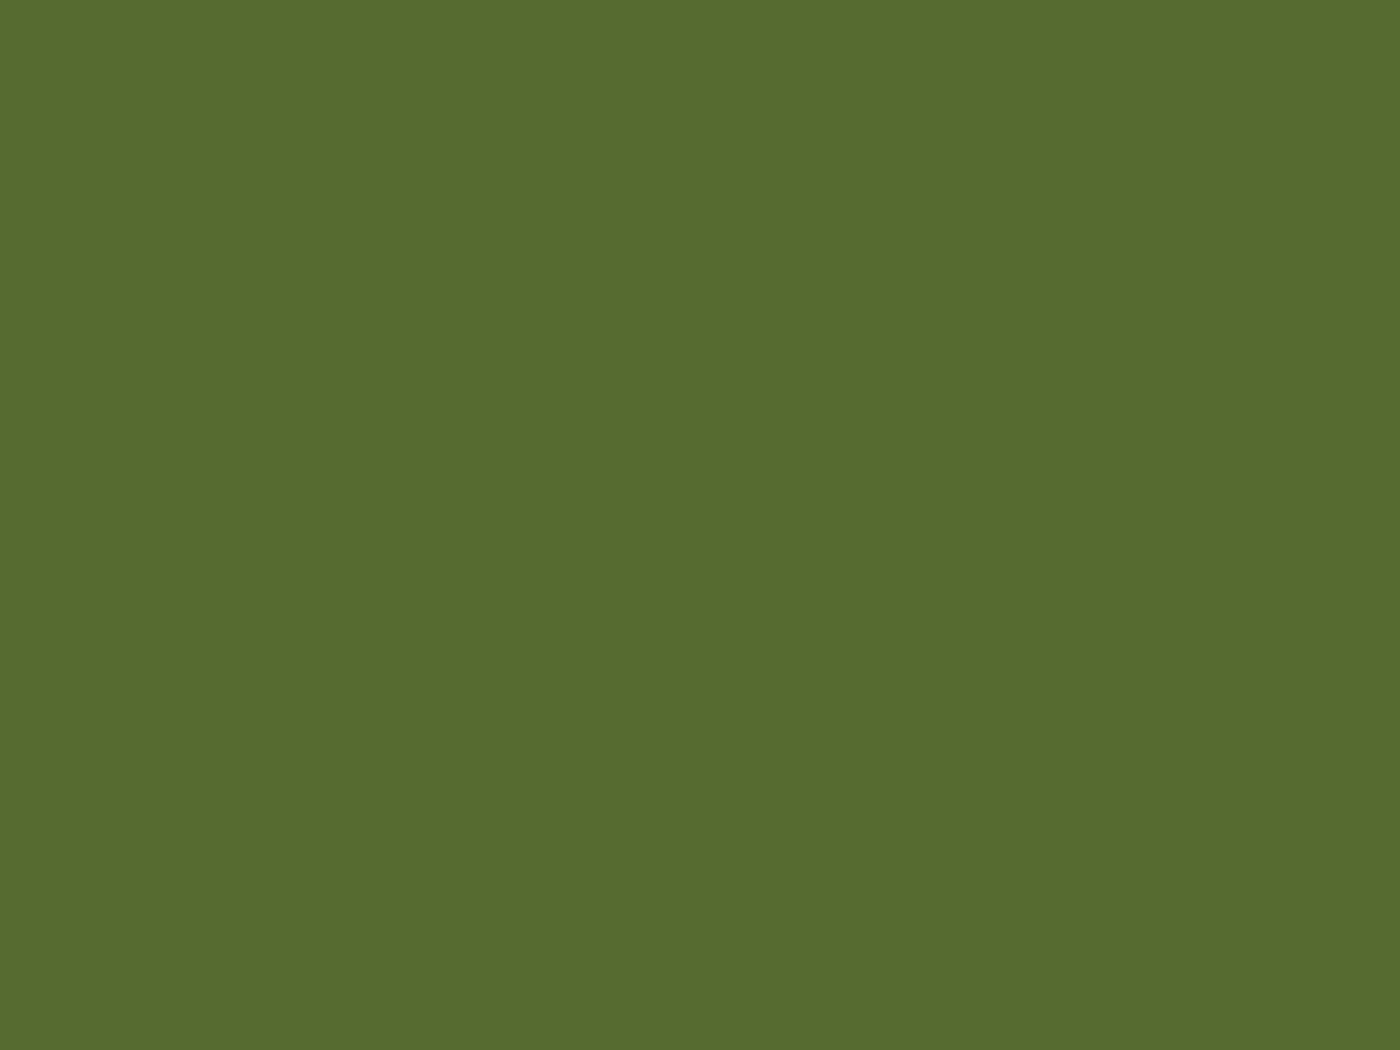 1400x1050 Dark Olive Green Solid Color Background